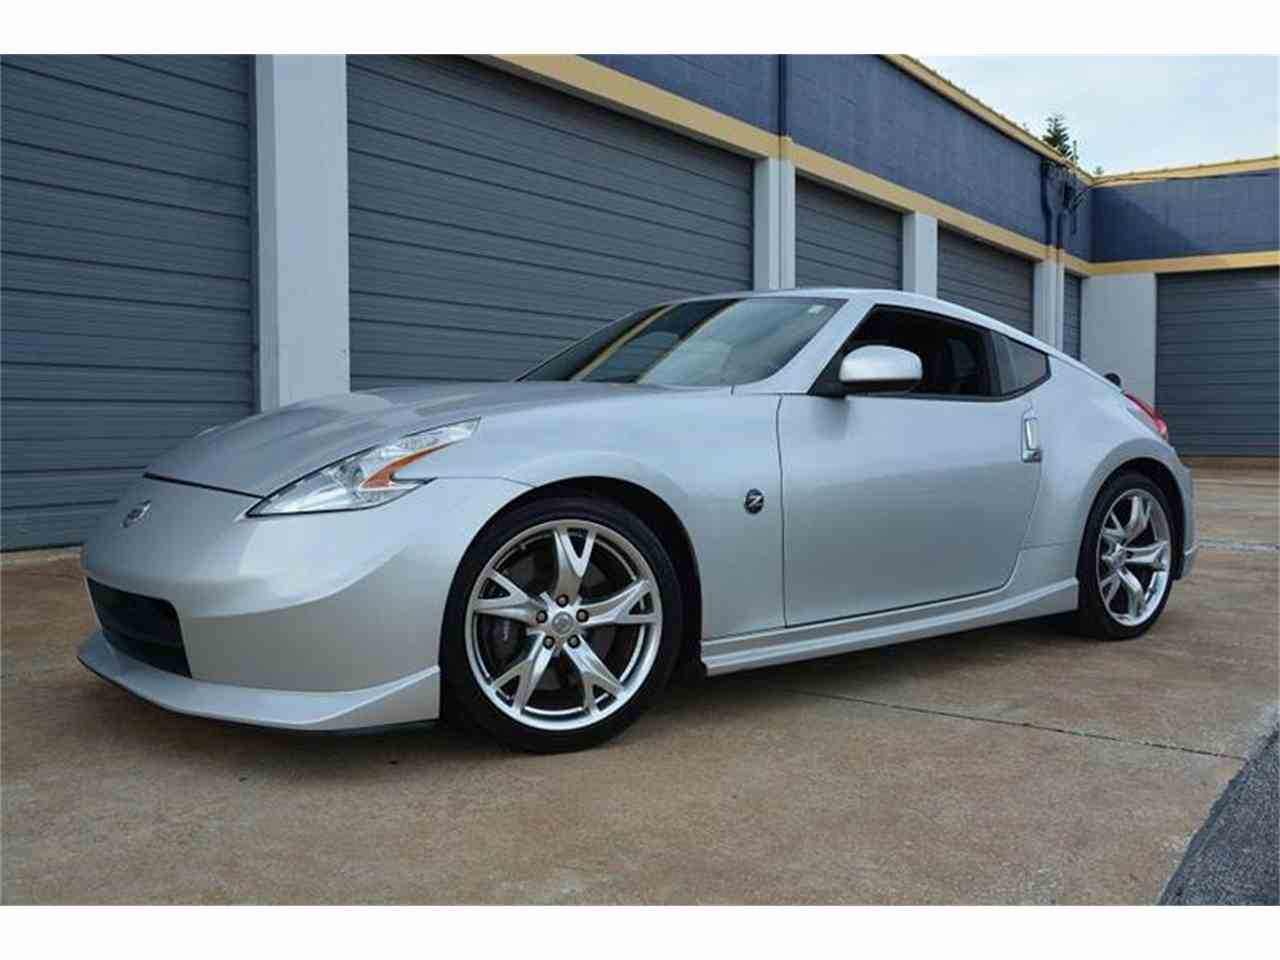 Large Picture of '09 Nissan 370Z - $12,900.00 - JZUJ